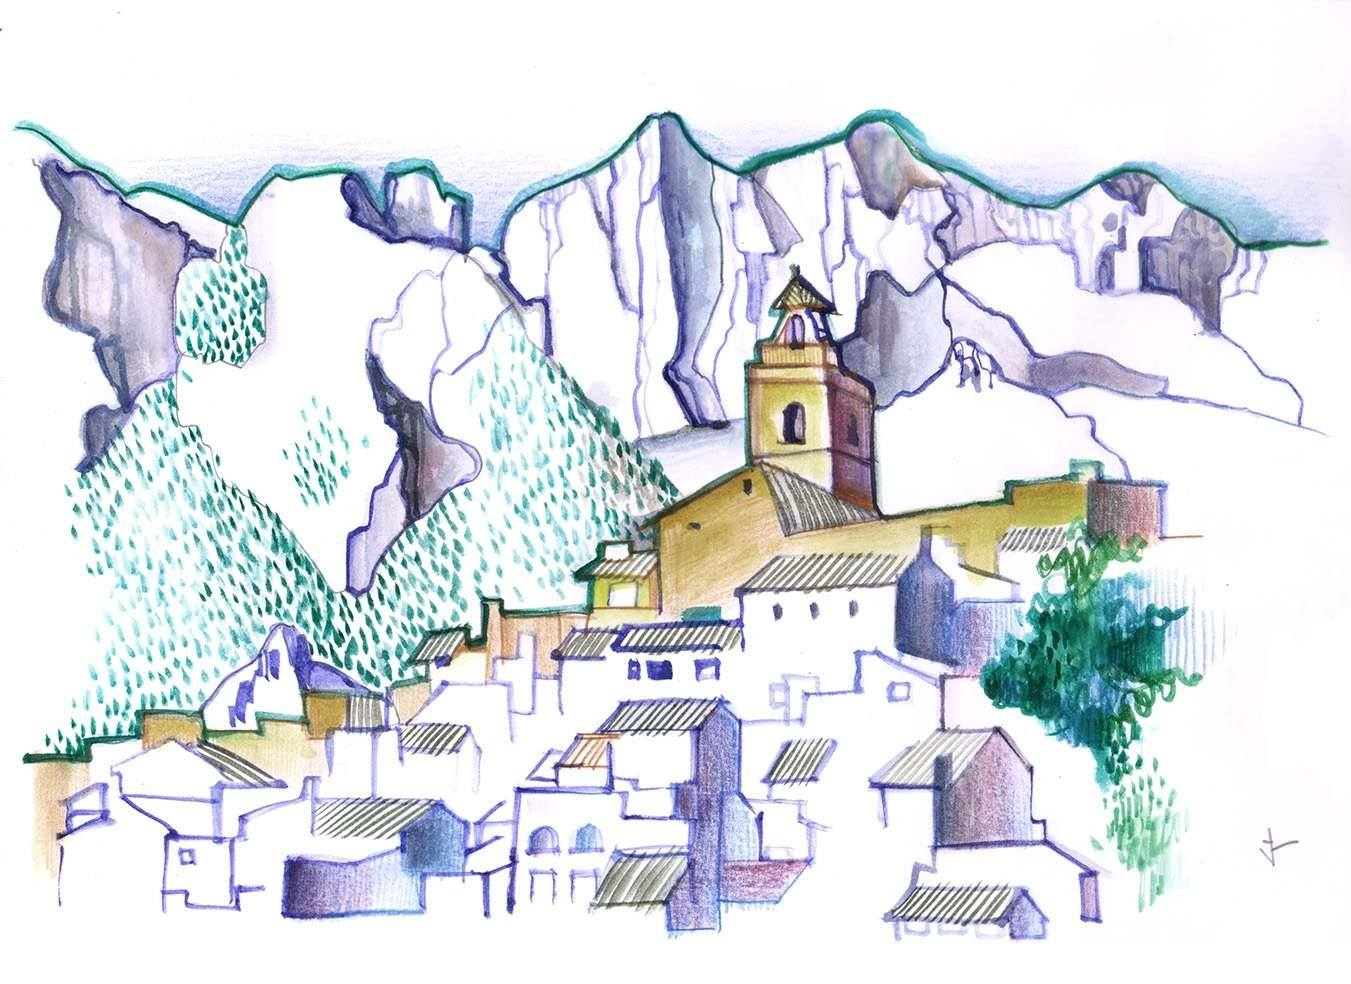 Polop In The Valley Of Guadalest - 8'' x 10'' - Watercolor on paper